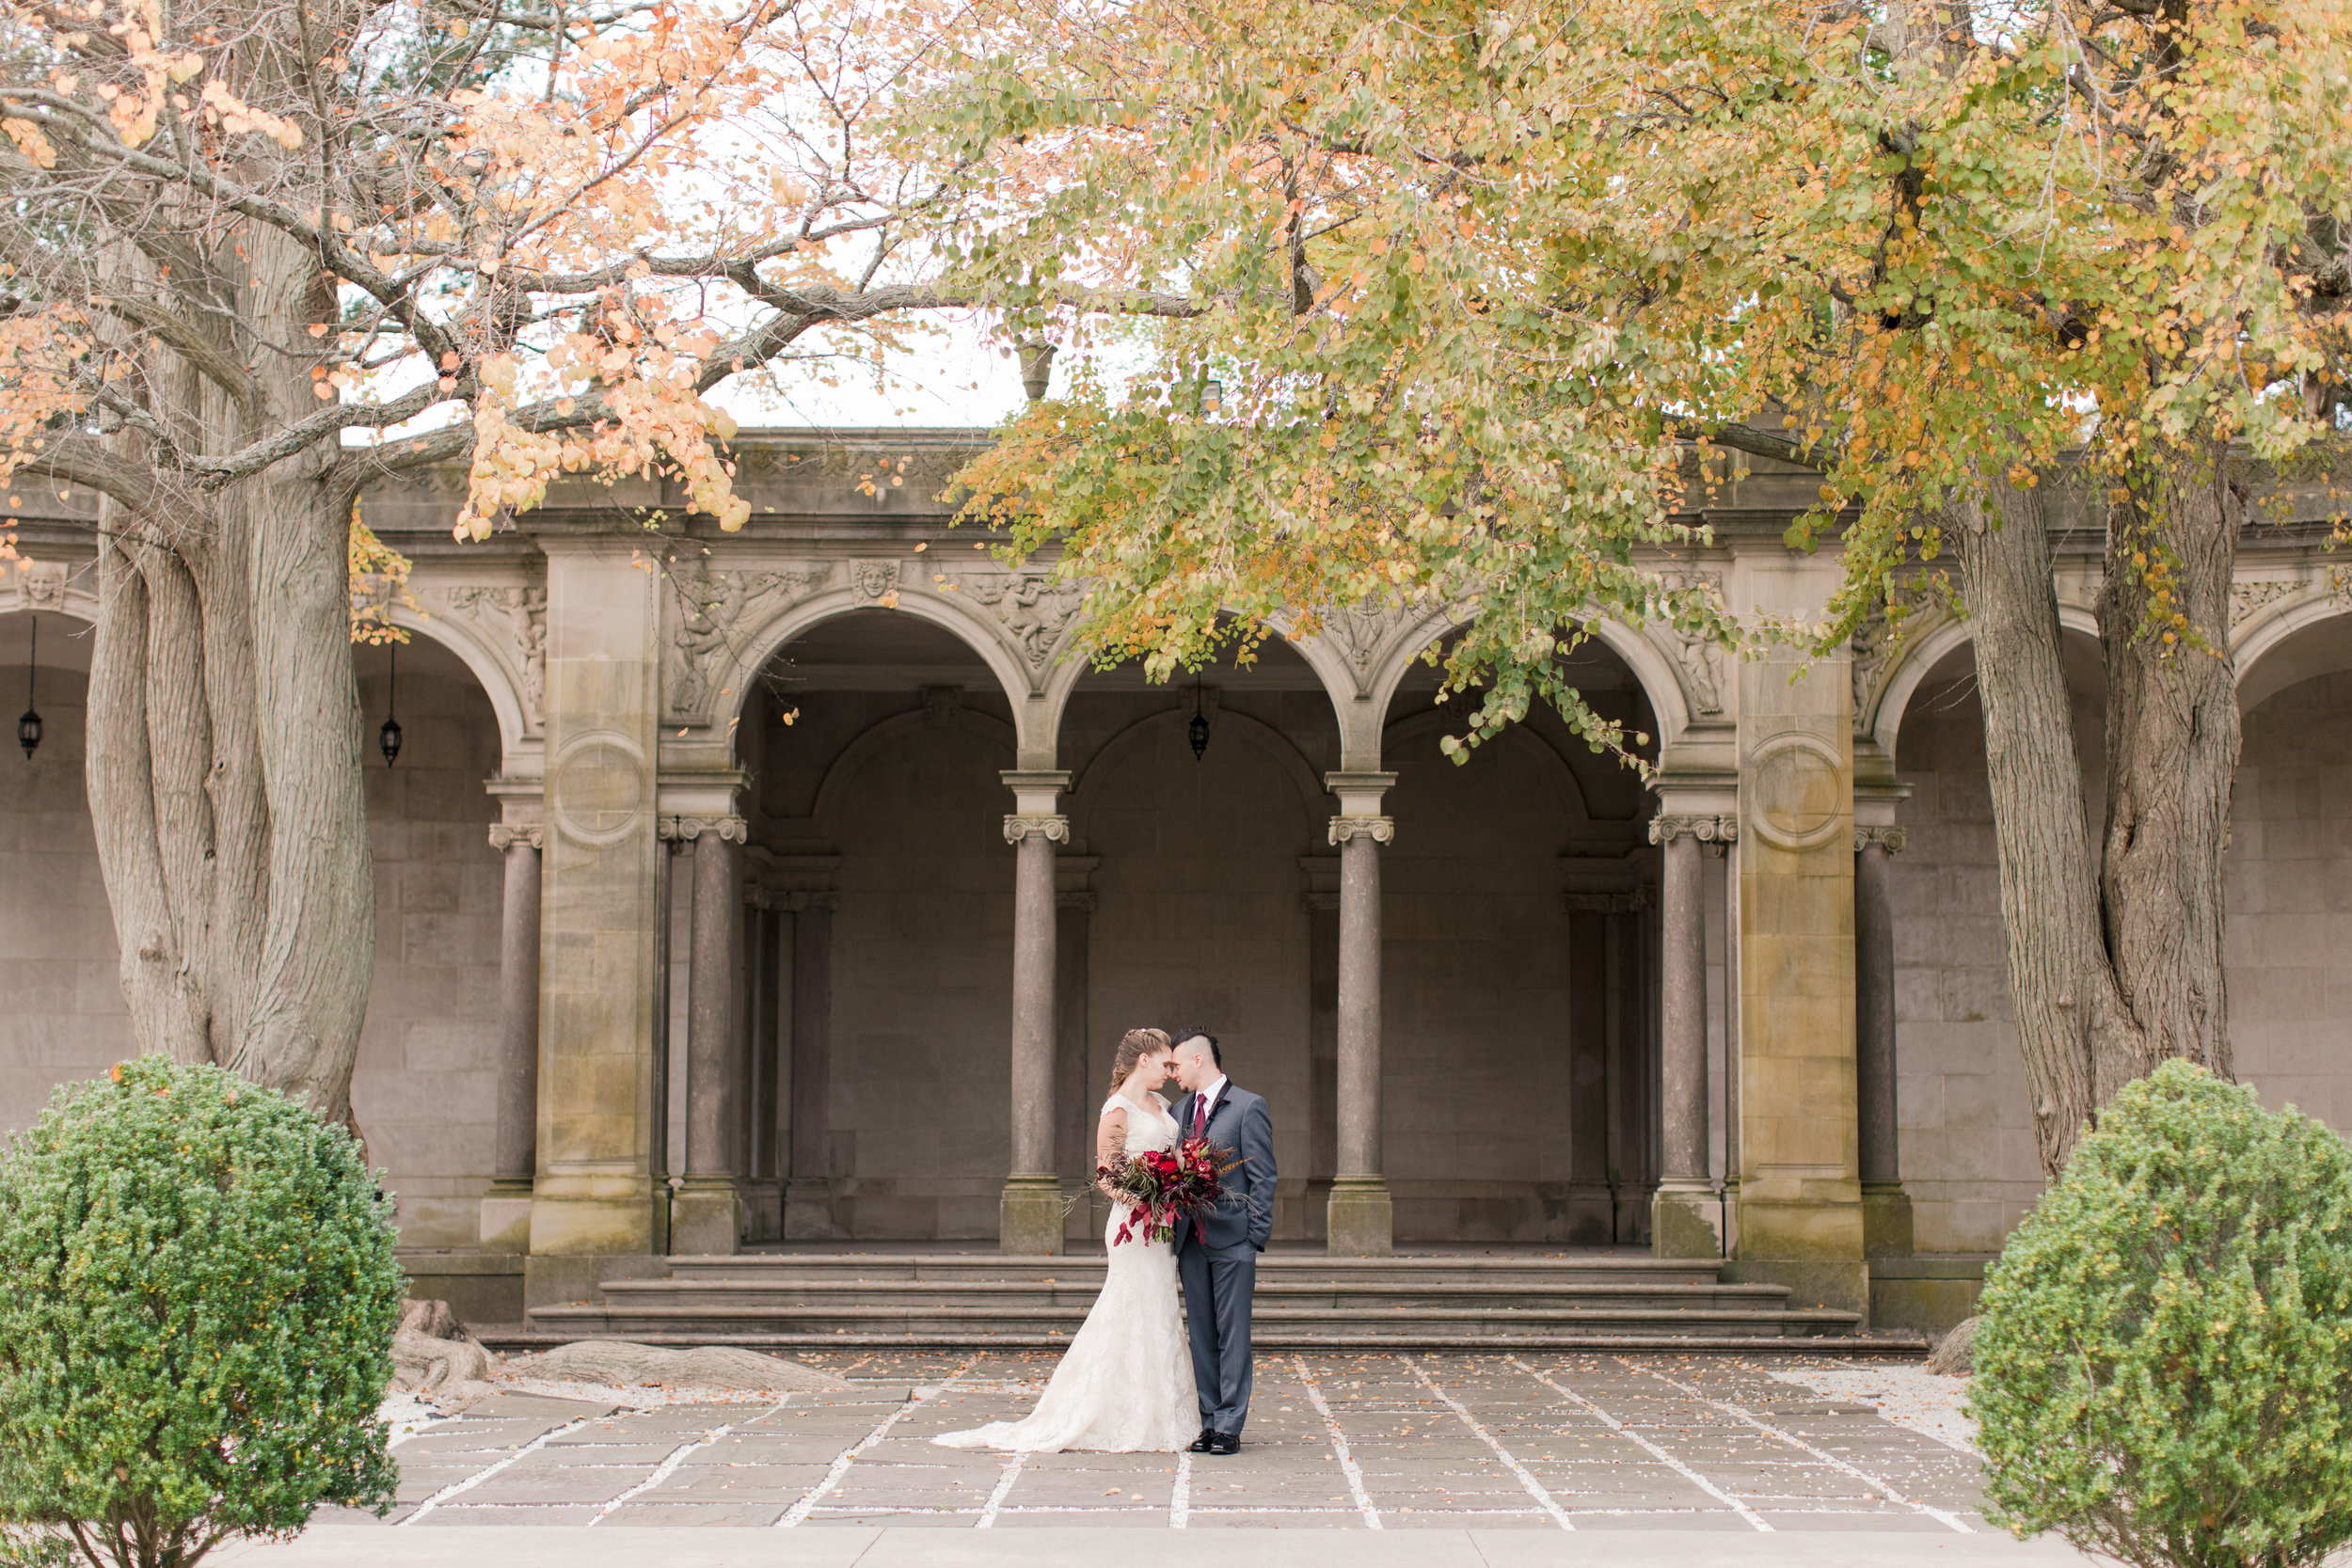 bride in lace allure gown with dark red fall bridal bouquet poses with groom at Monmouth University